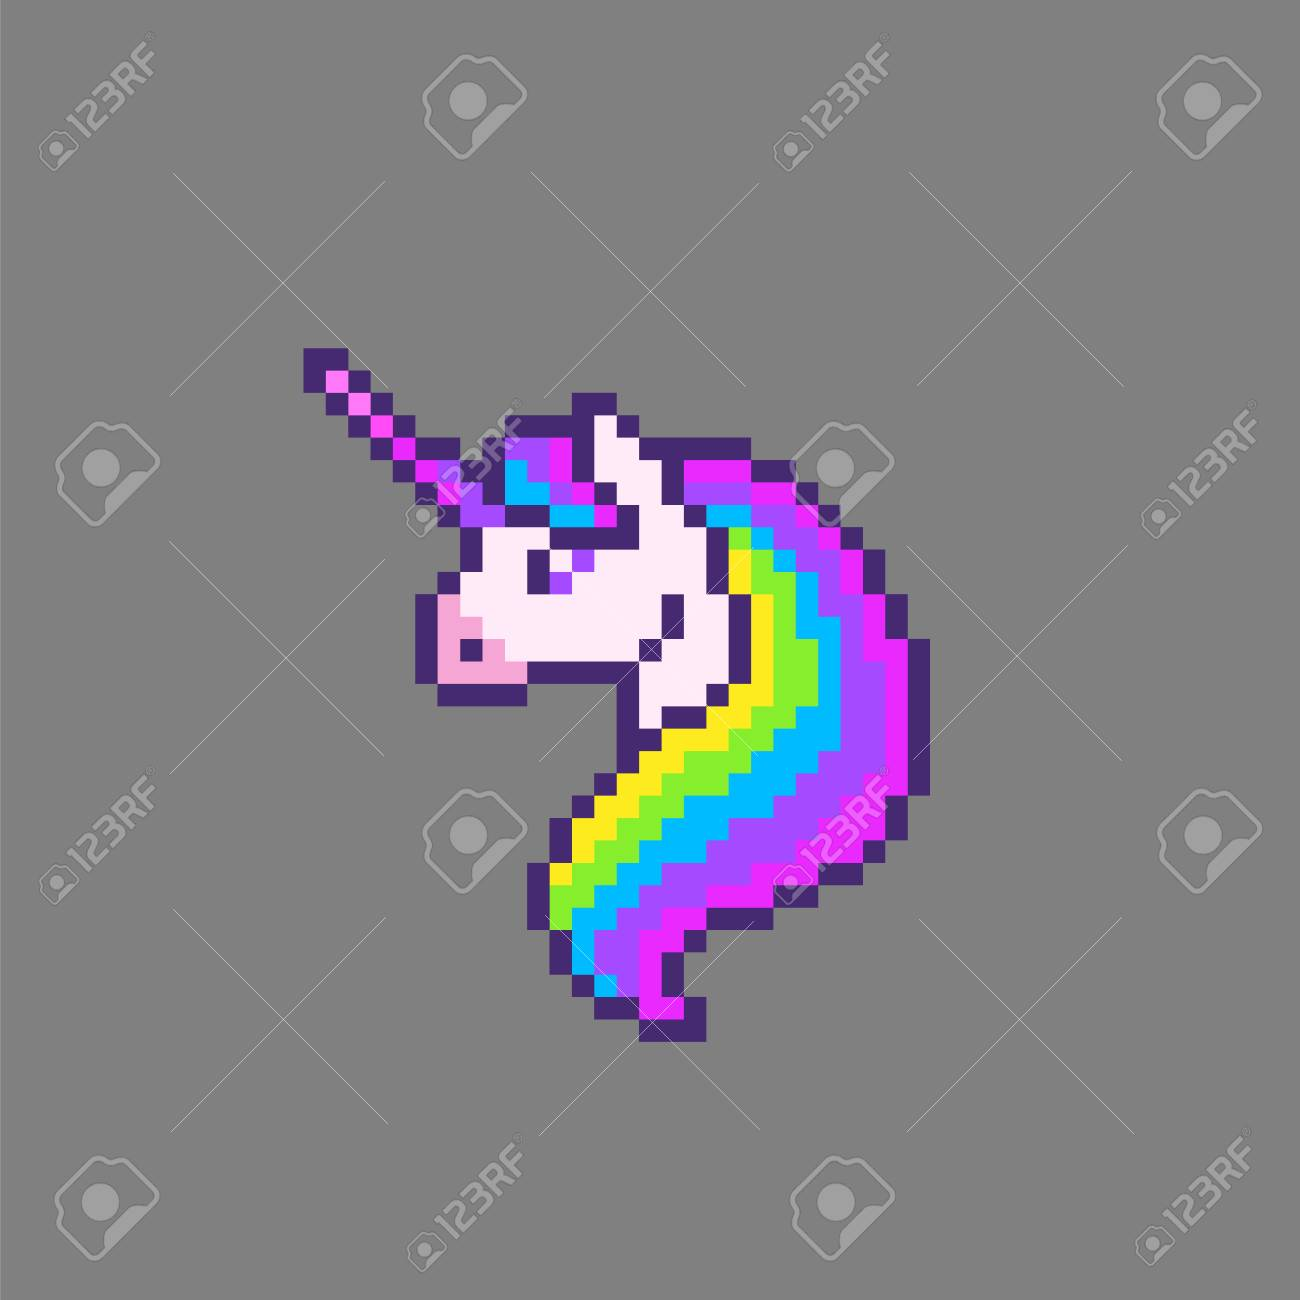 Pixel Art Cute Unicorn Head Vector Illustration